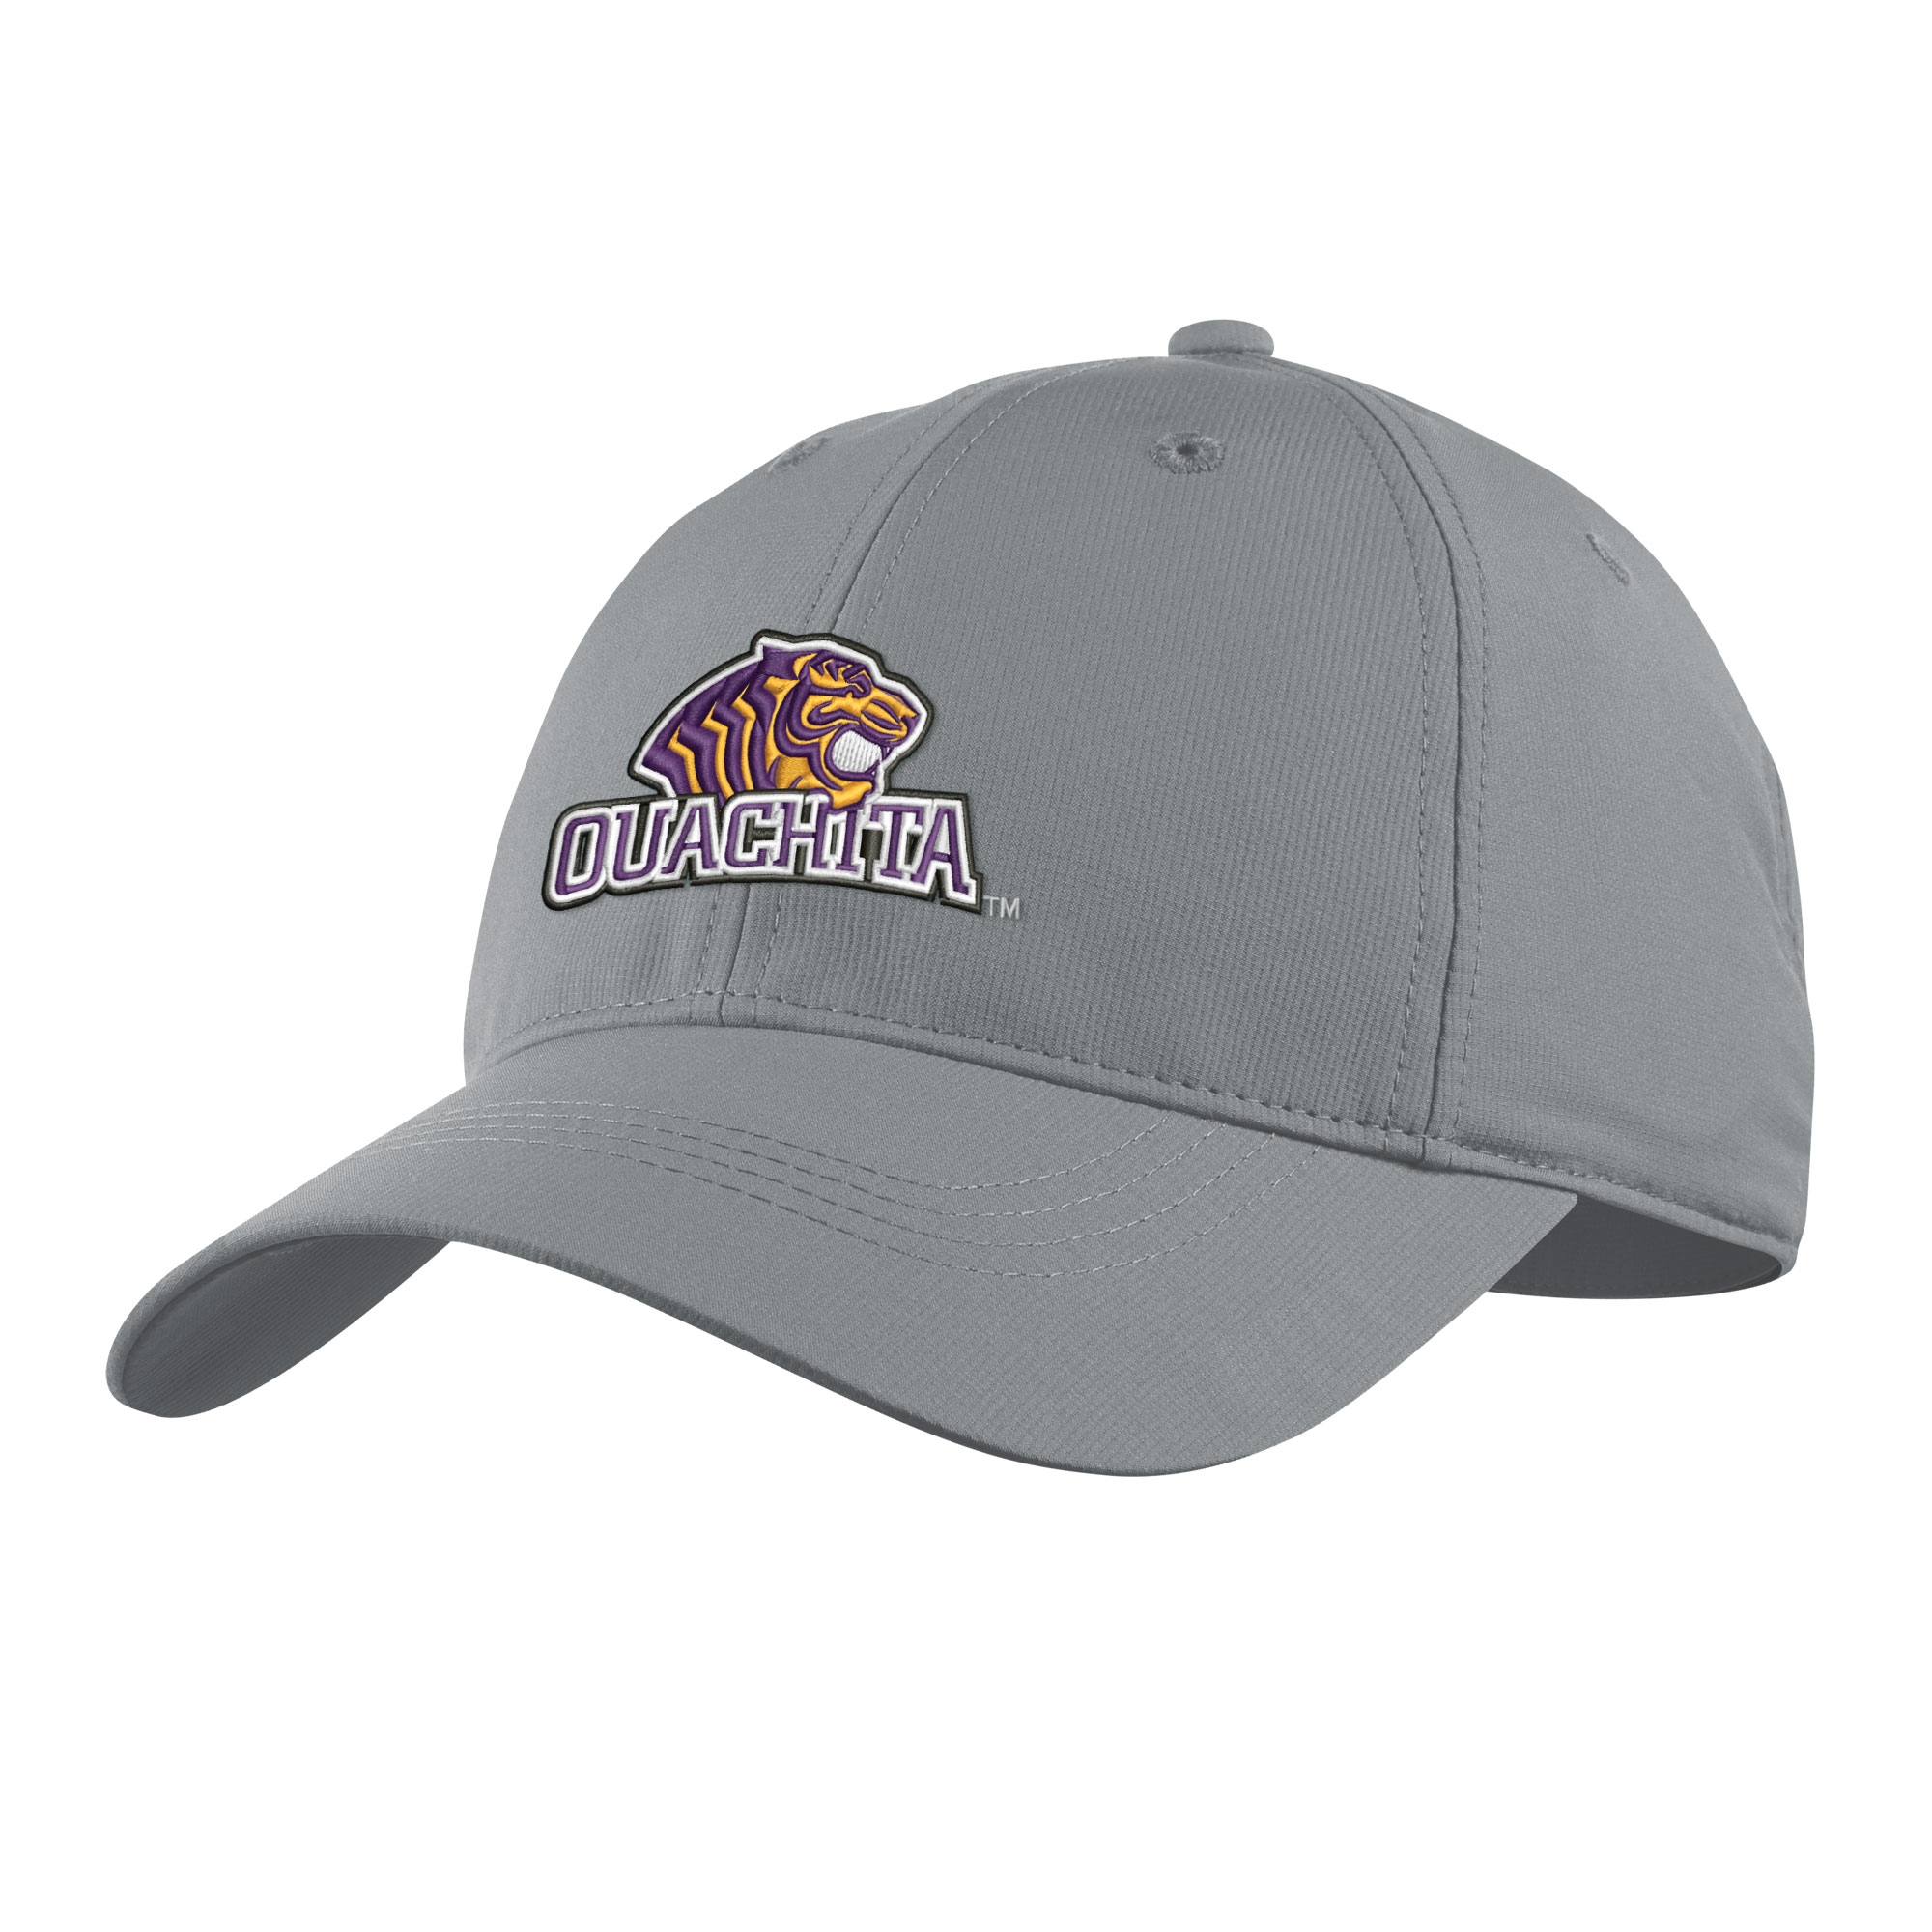 OUACHITA LOGO GOLF TECH CAP